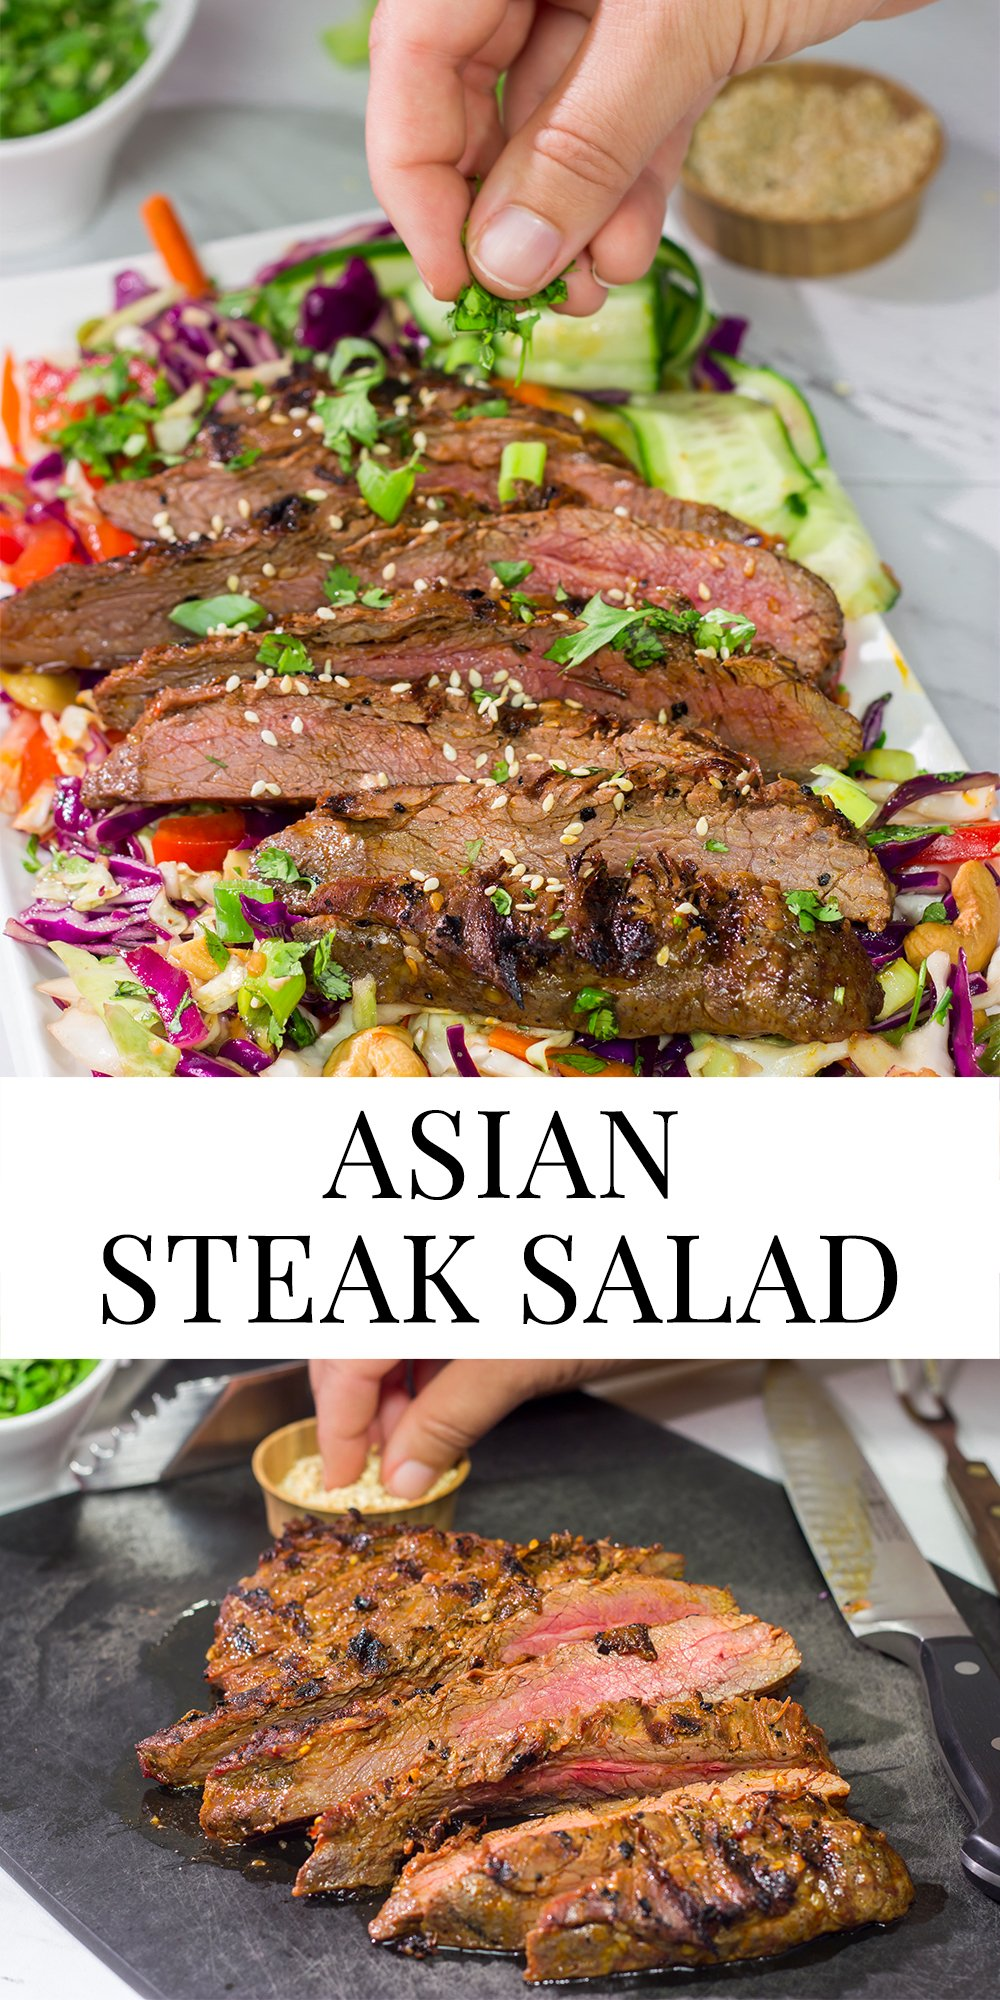 Featuring a flavorful, grilled flank steak served over a colorful salad, this Asian Steak Salad is an easy and tasty way to mix up the weeknight dinner routine!